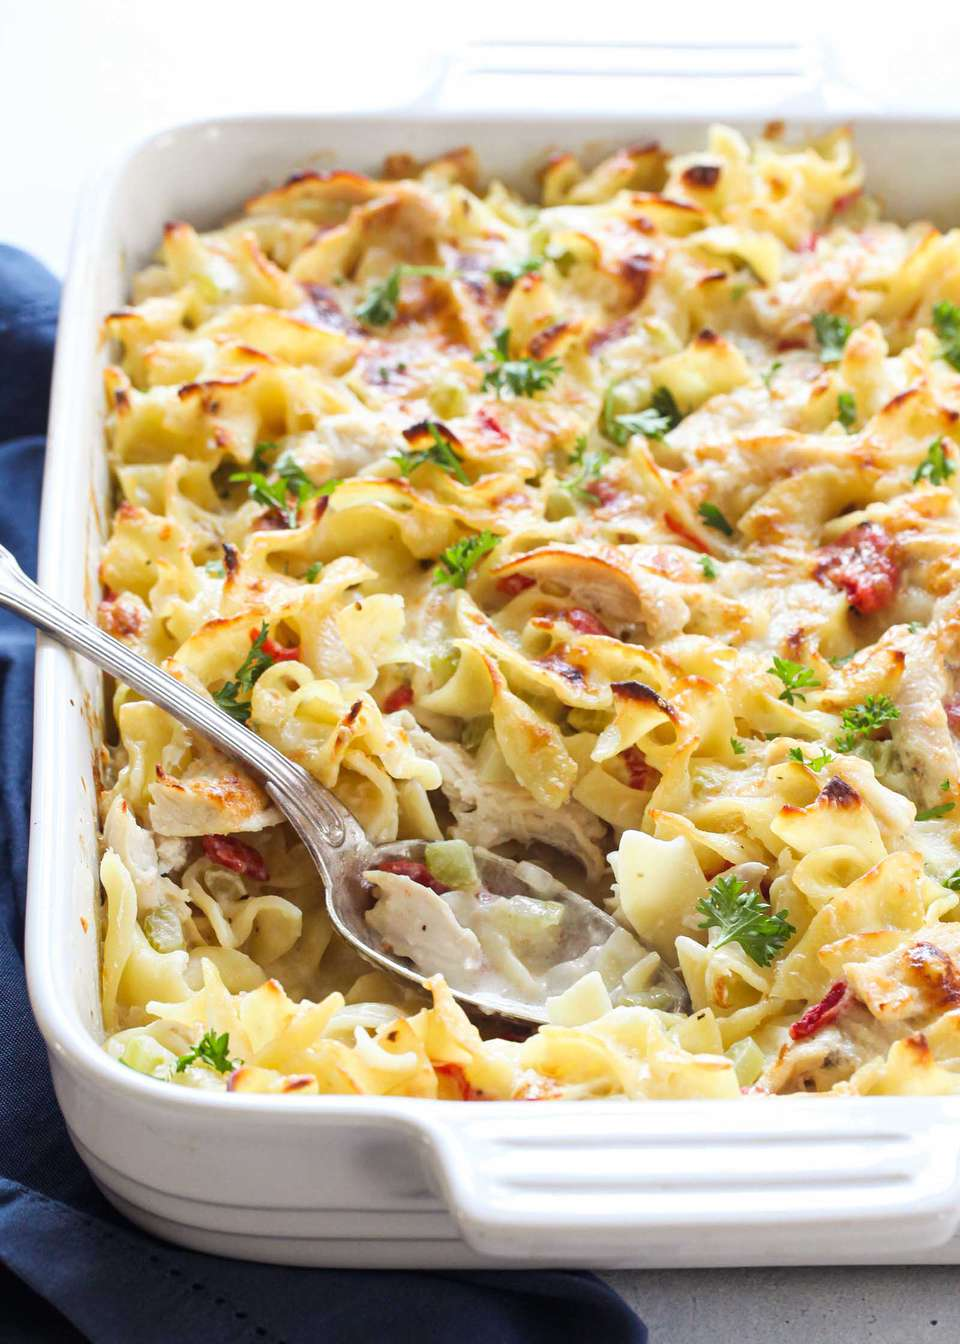 Creamy Chicken Noodle Casserole in a white baking dish with a silver spoon.